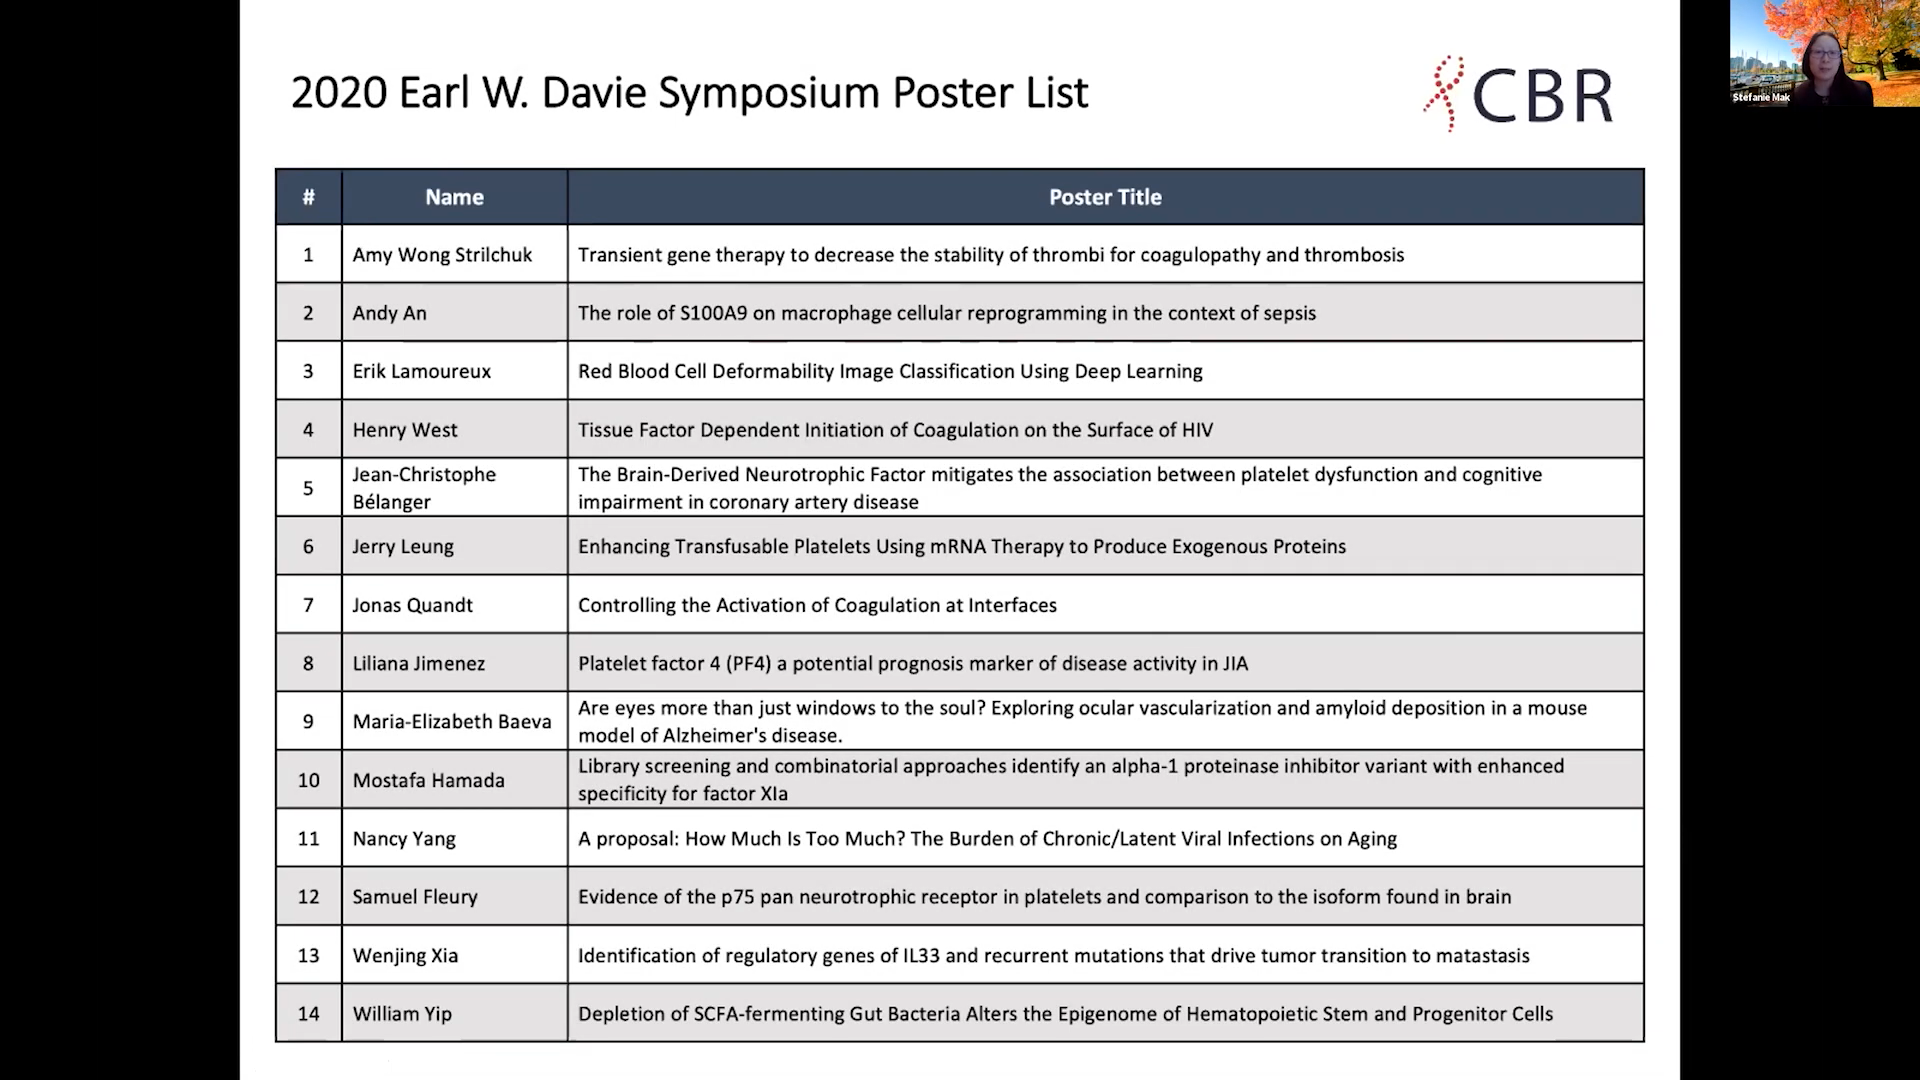 A Zoom screen of trainee poster presenters who presented via virtual breakout room sessions; Dr. Stefanie Mak is speaking in a corner of the screen